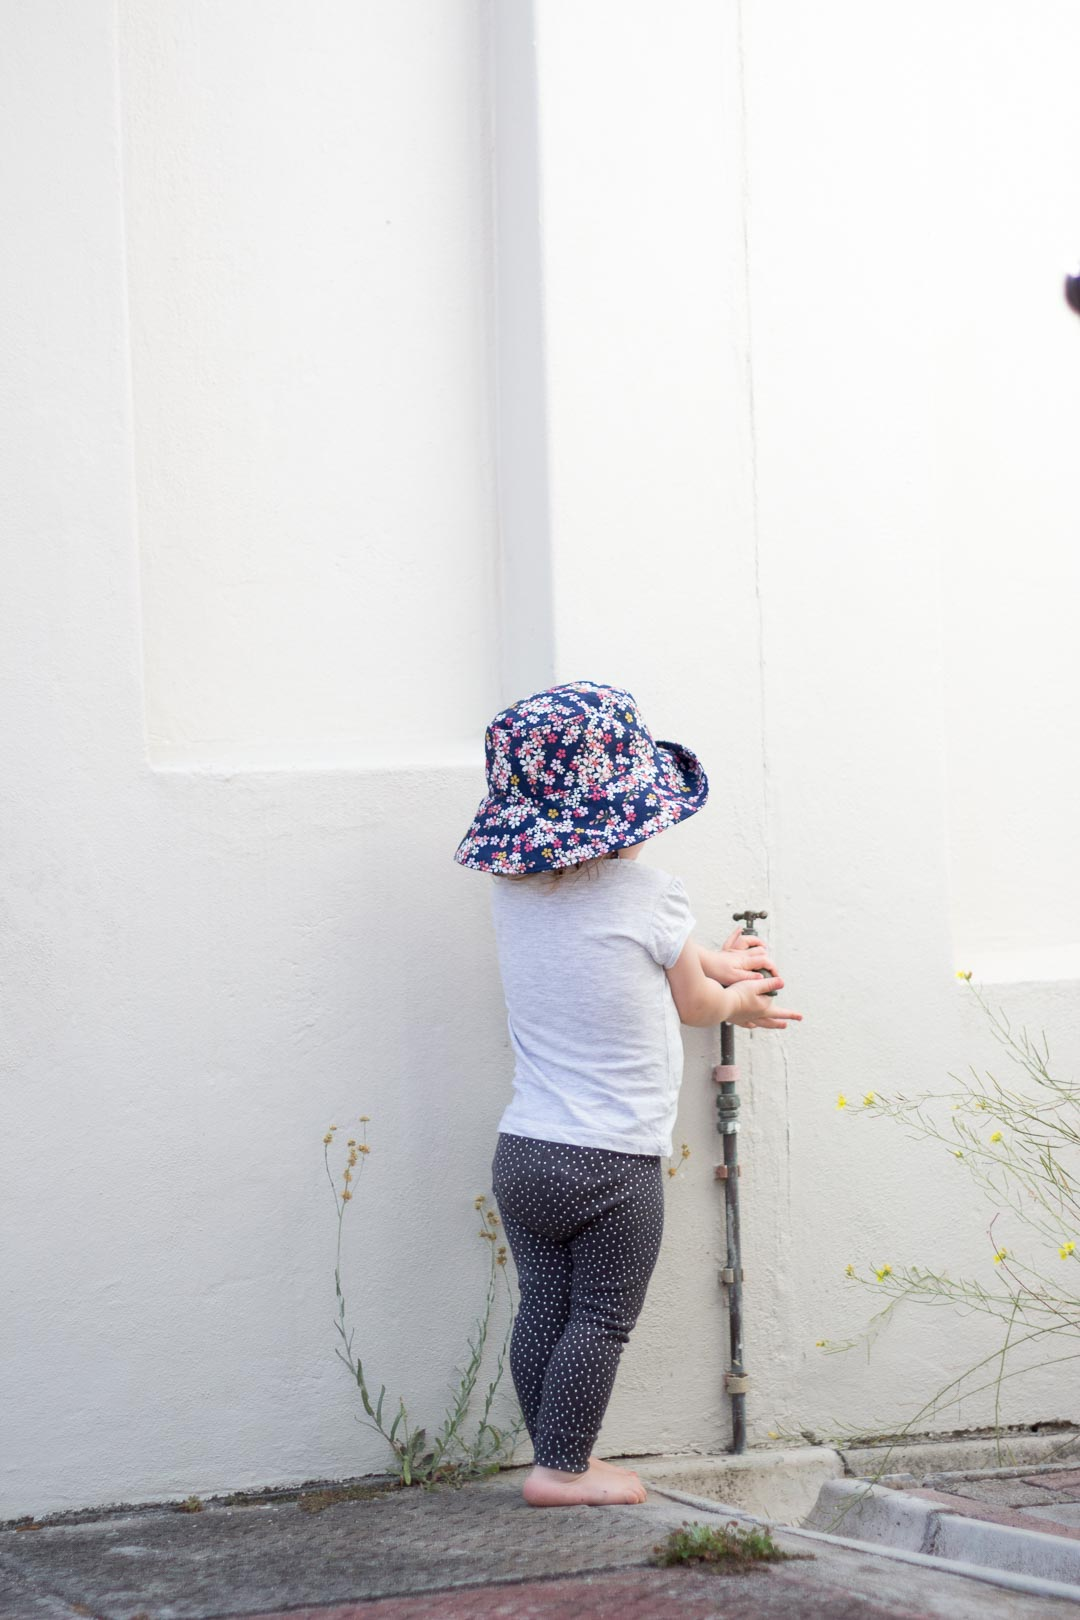 DIY Wide-Brimmed Toddler Sun Hat // Easy to follow bucket hat tutorial with link to free printable pattern.